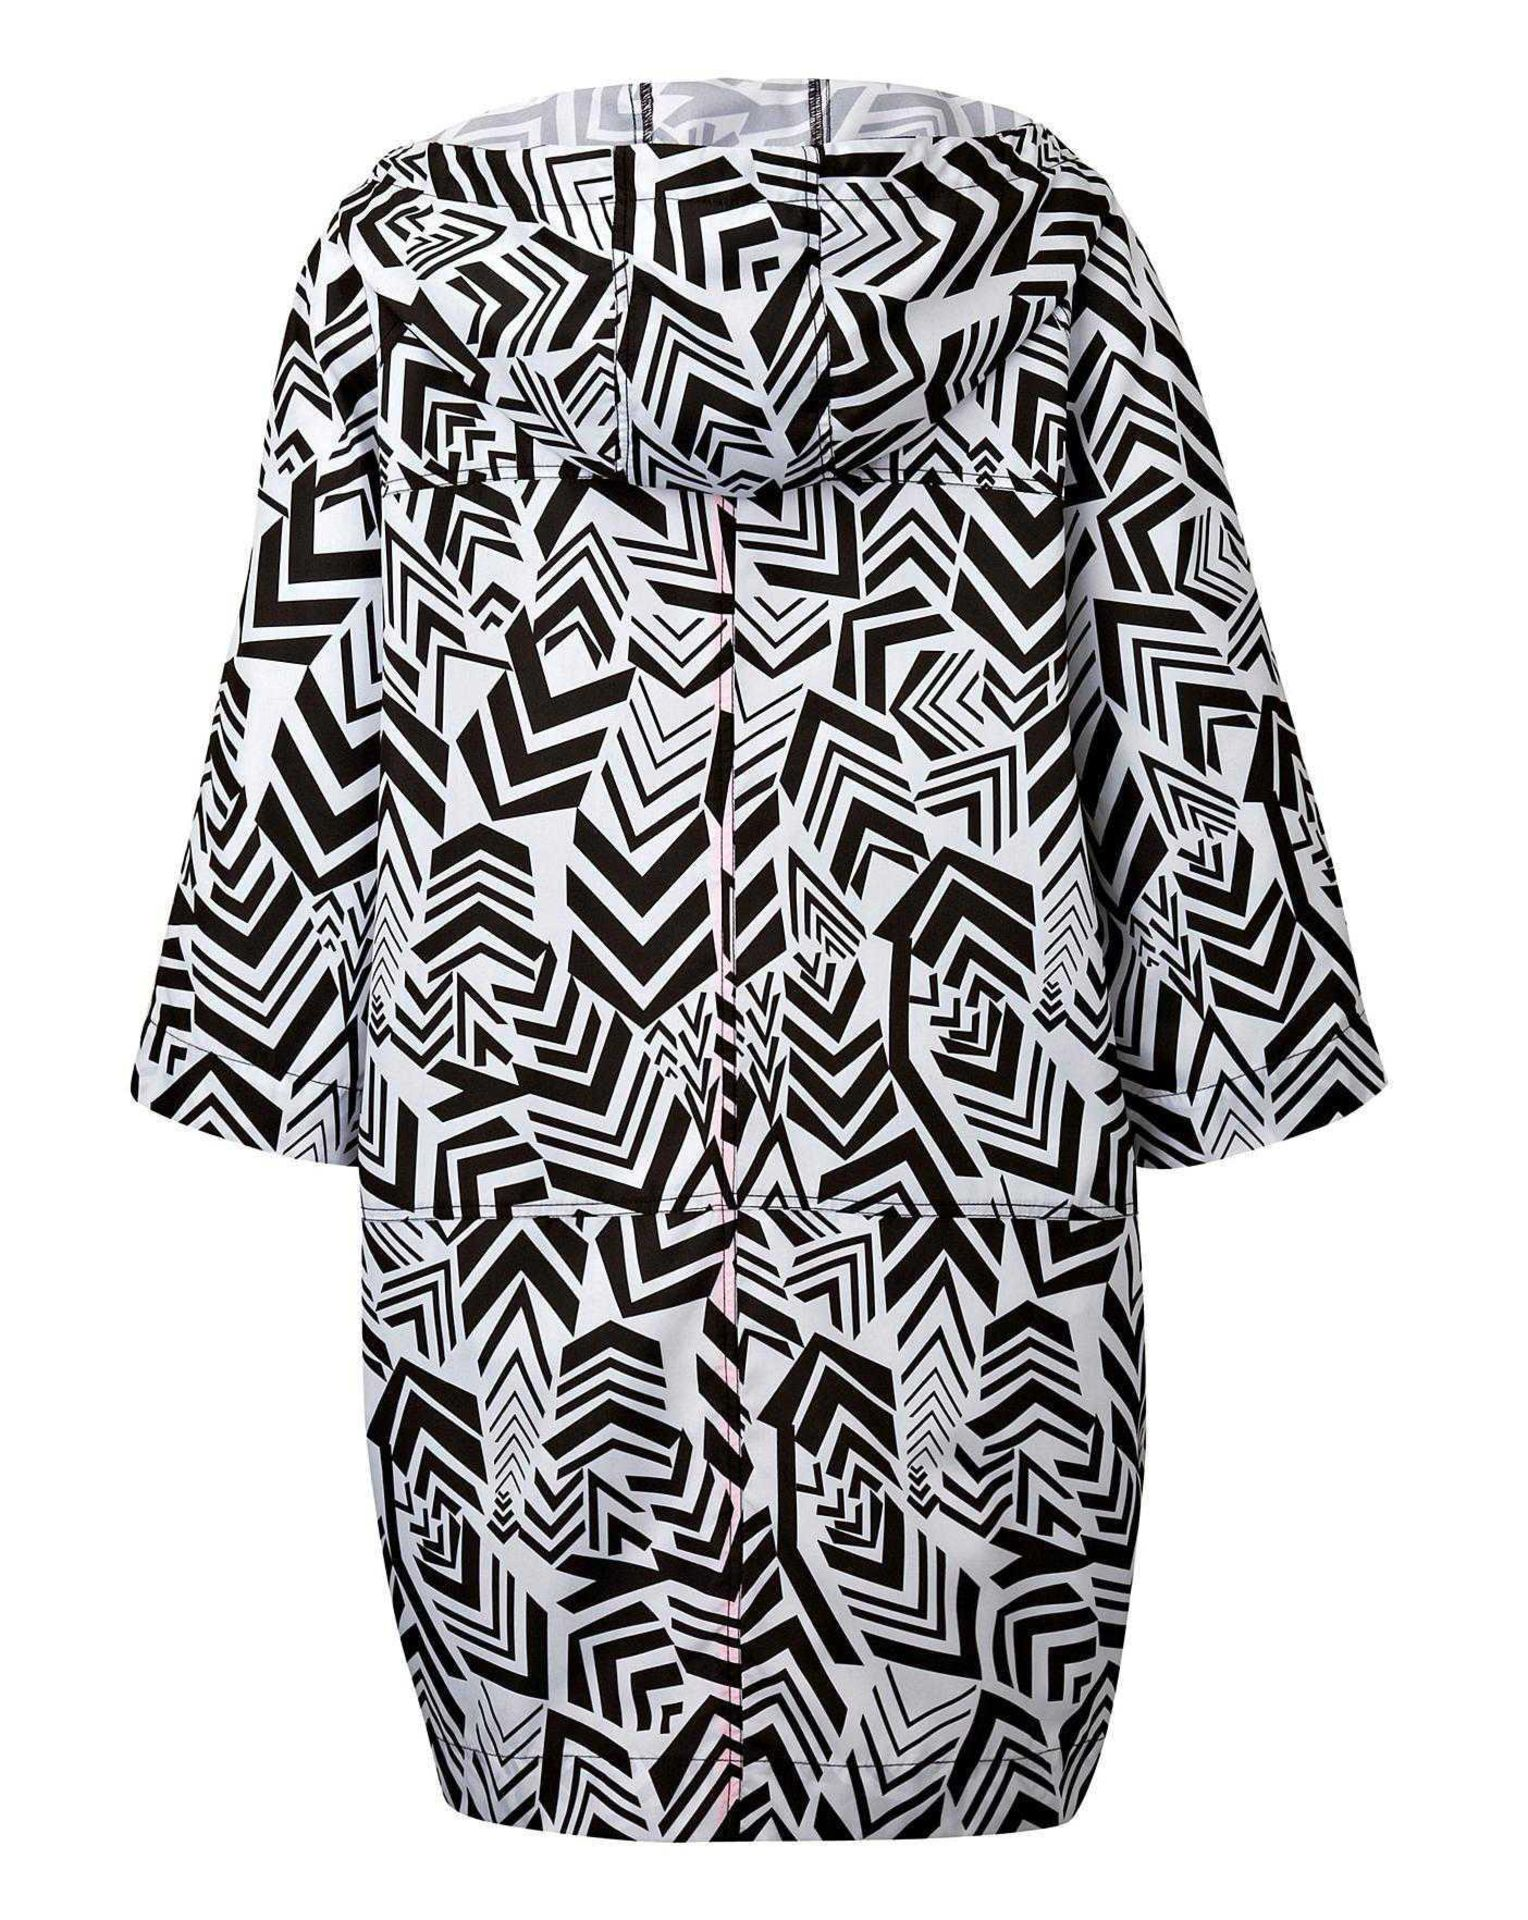 Rrp £750 Lot To Contain 30 Brand New Bagged/Tagged Women'S Size 12/14 Black And White Geo Printed - Image 3 of 4